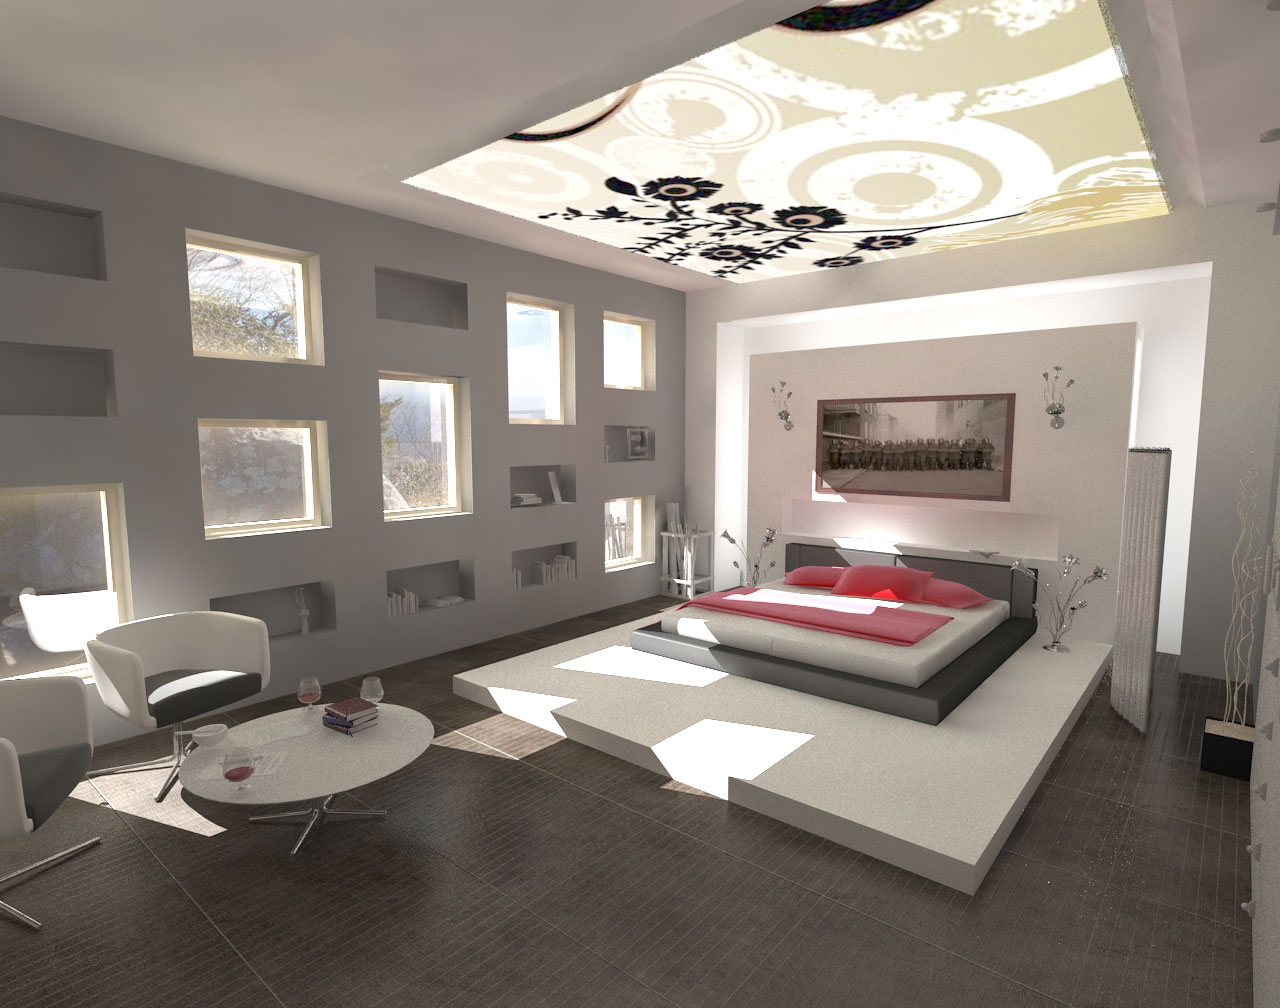 Exclusive interior bedroom ideas home design ideas and for One bedroom house interior design